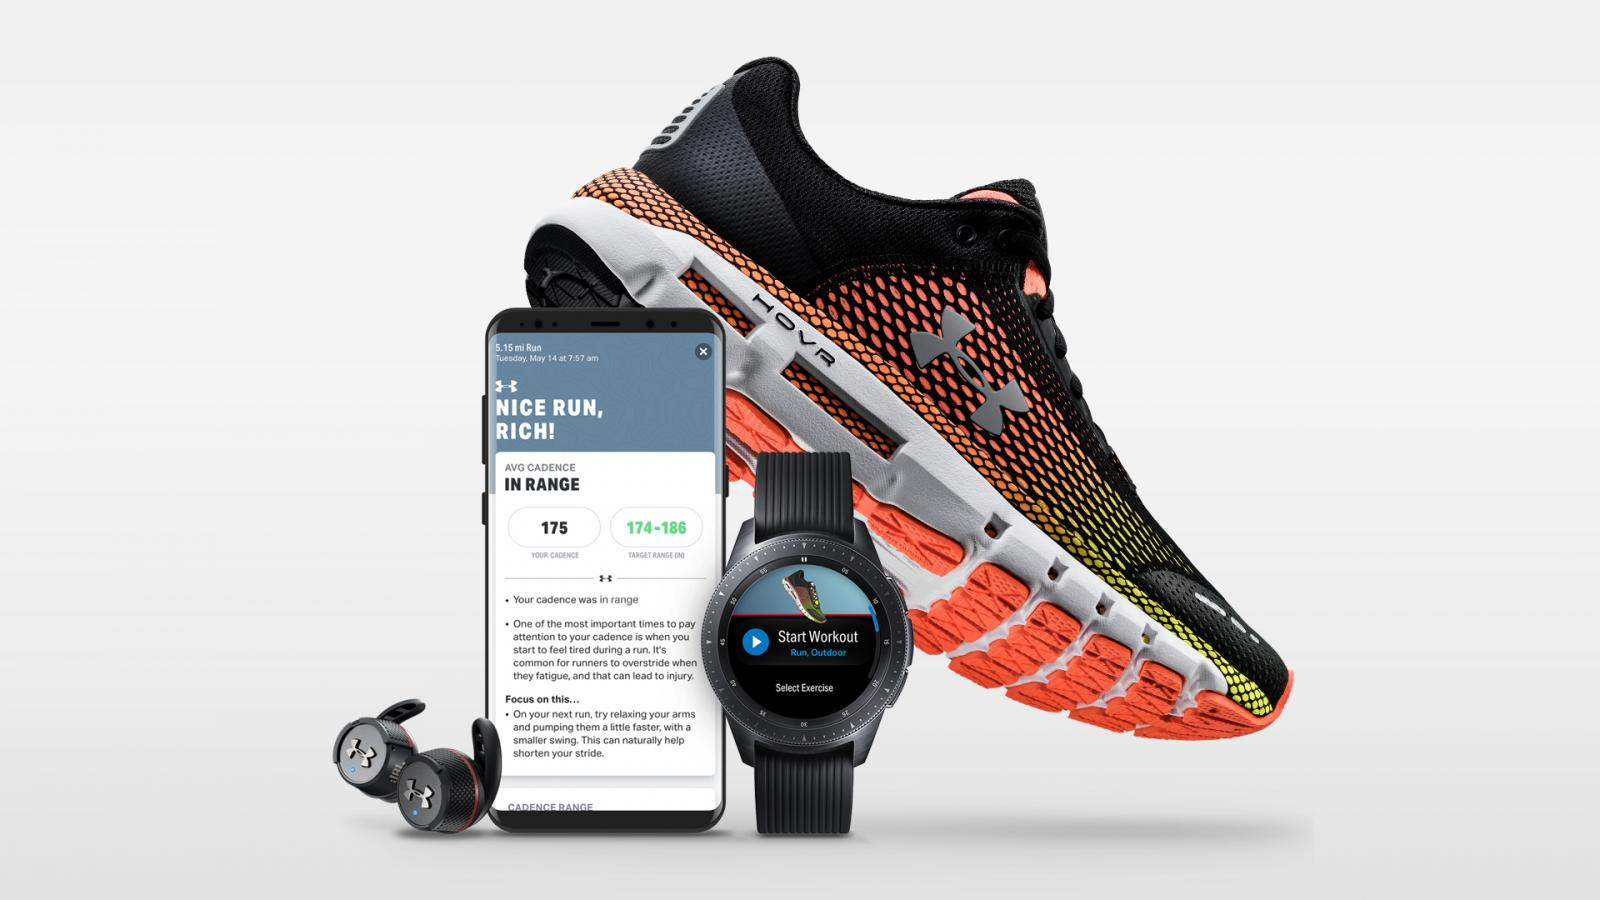 935a3f42 UA Partners with JBL and Samsung to Create Digital Runner Ecosystem ...